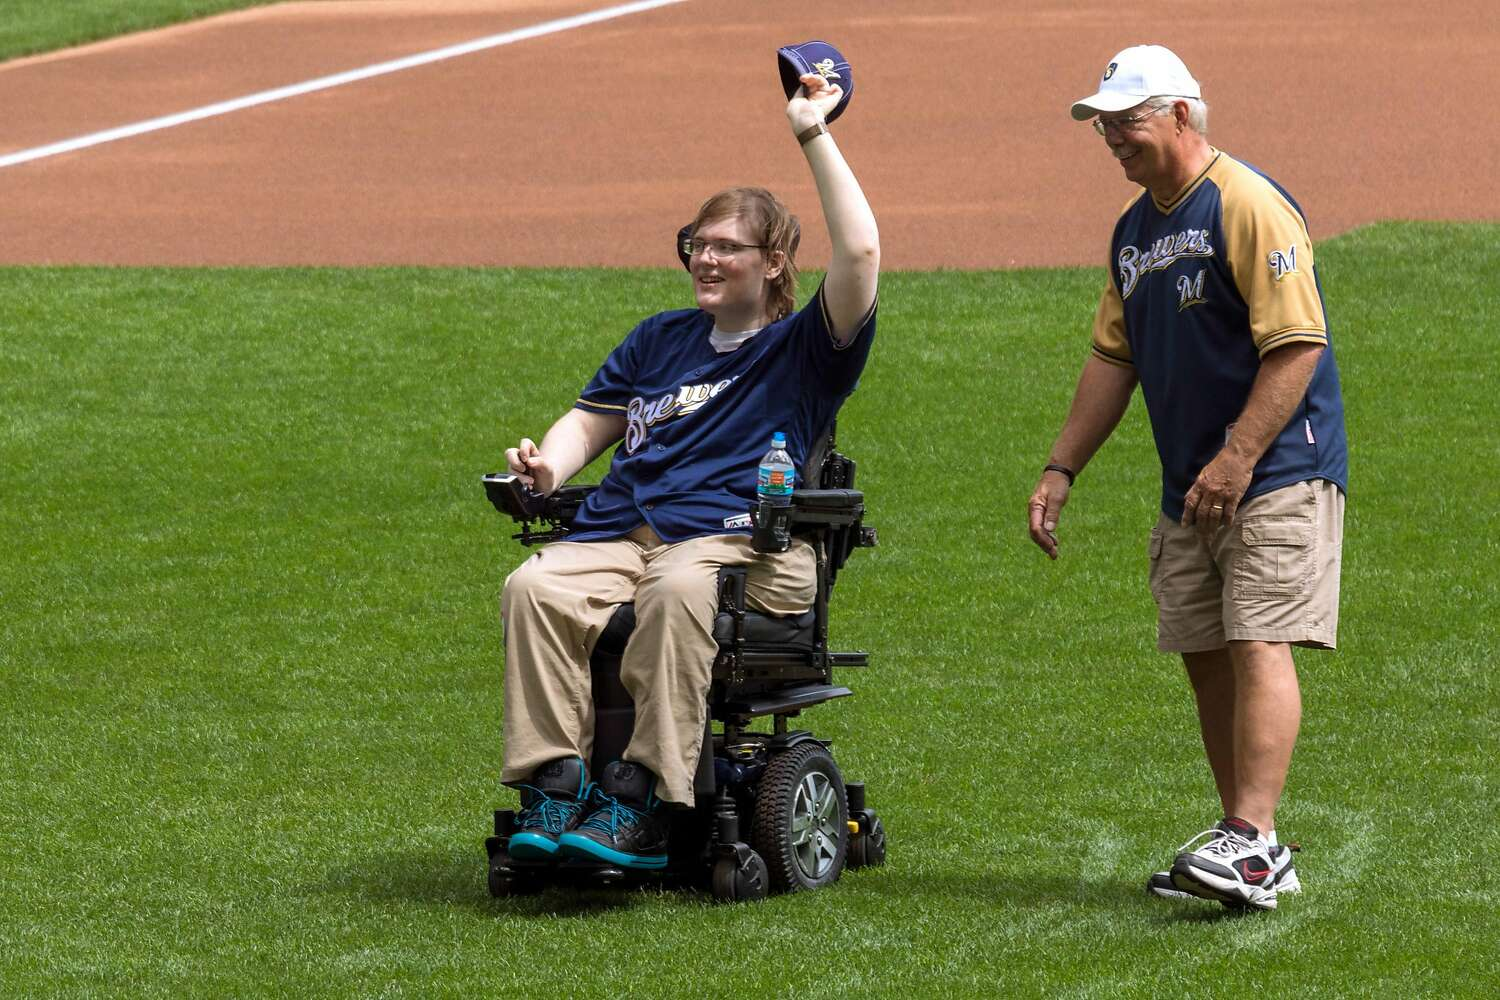 Lucas Lindner after throwing the first pitch in a baseball game.